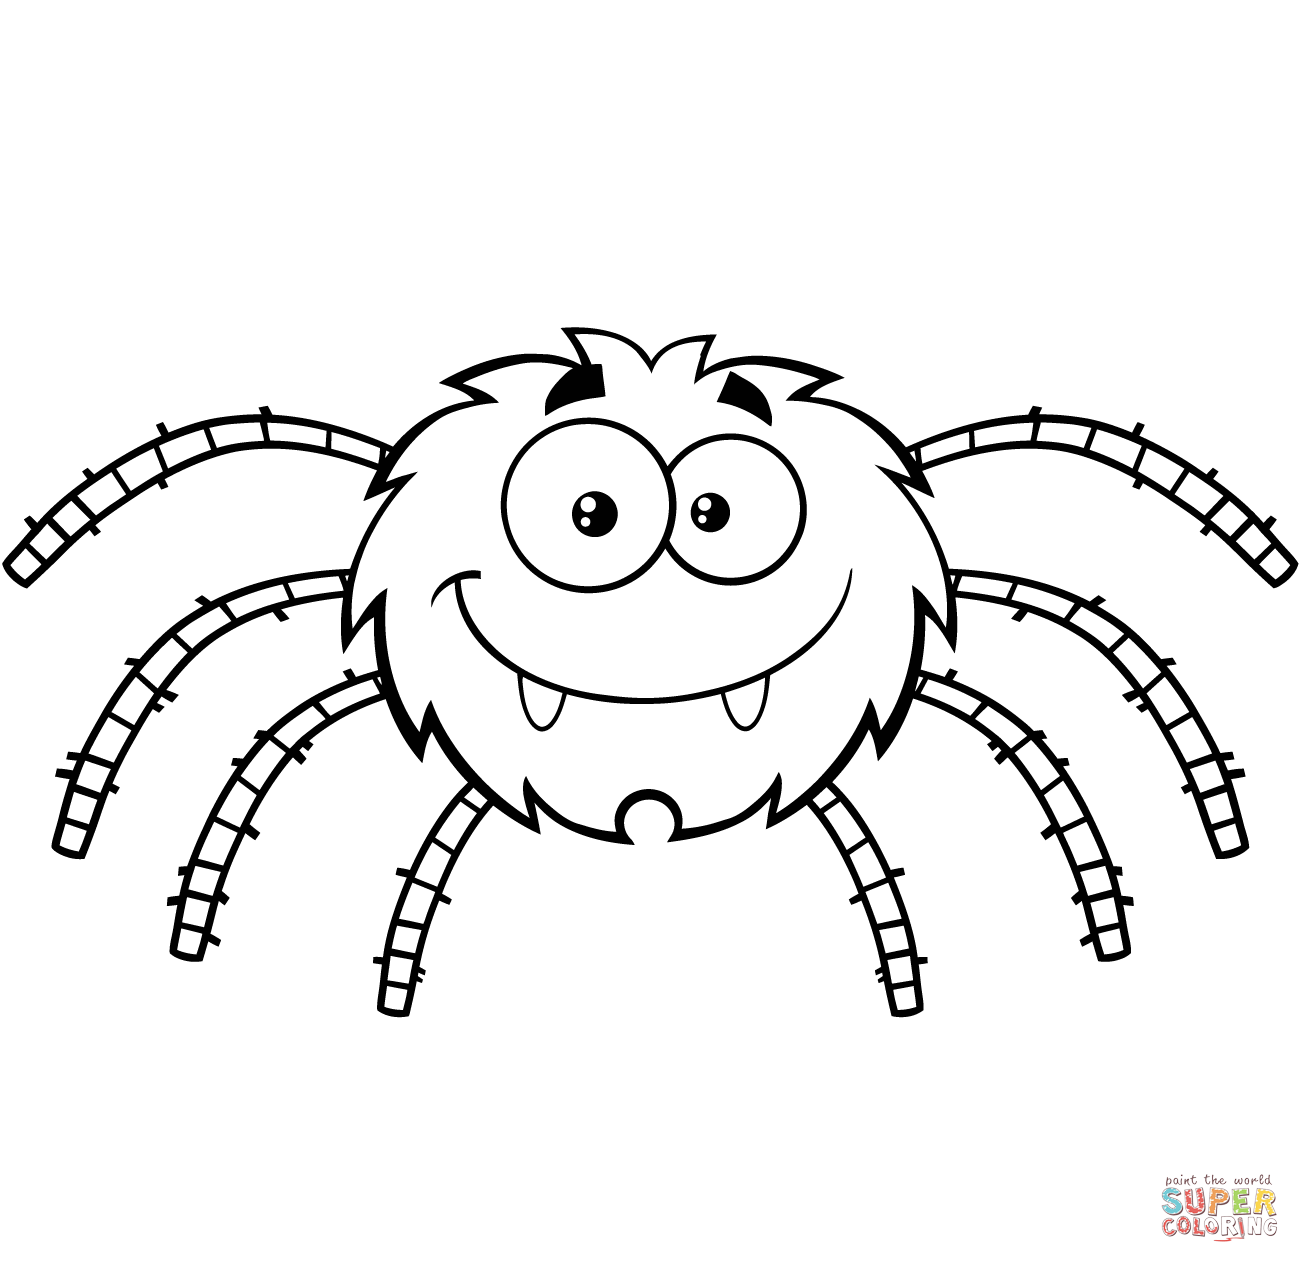 Funny Cartoon Spider Coloring Page From Spider Category Select From 27115 Printable Crafts Of Cartoons N Spider Coloring Page Coloring Pages Spider Web Craft